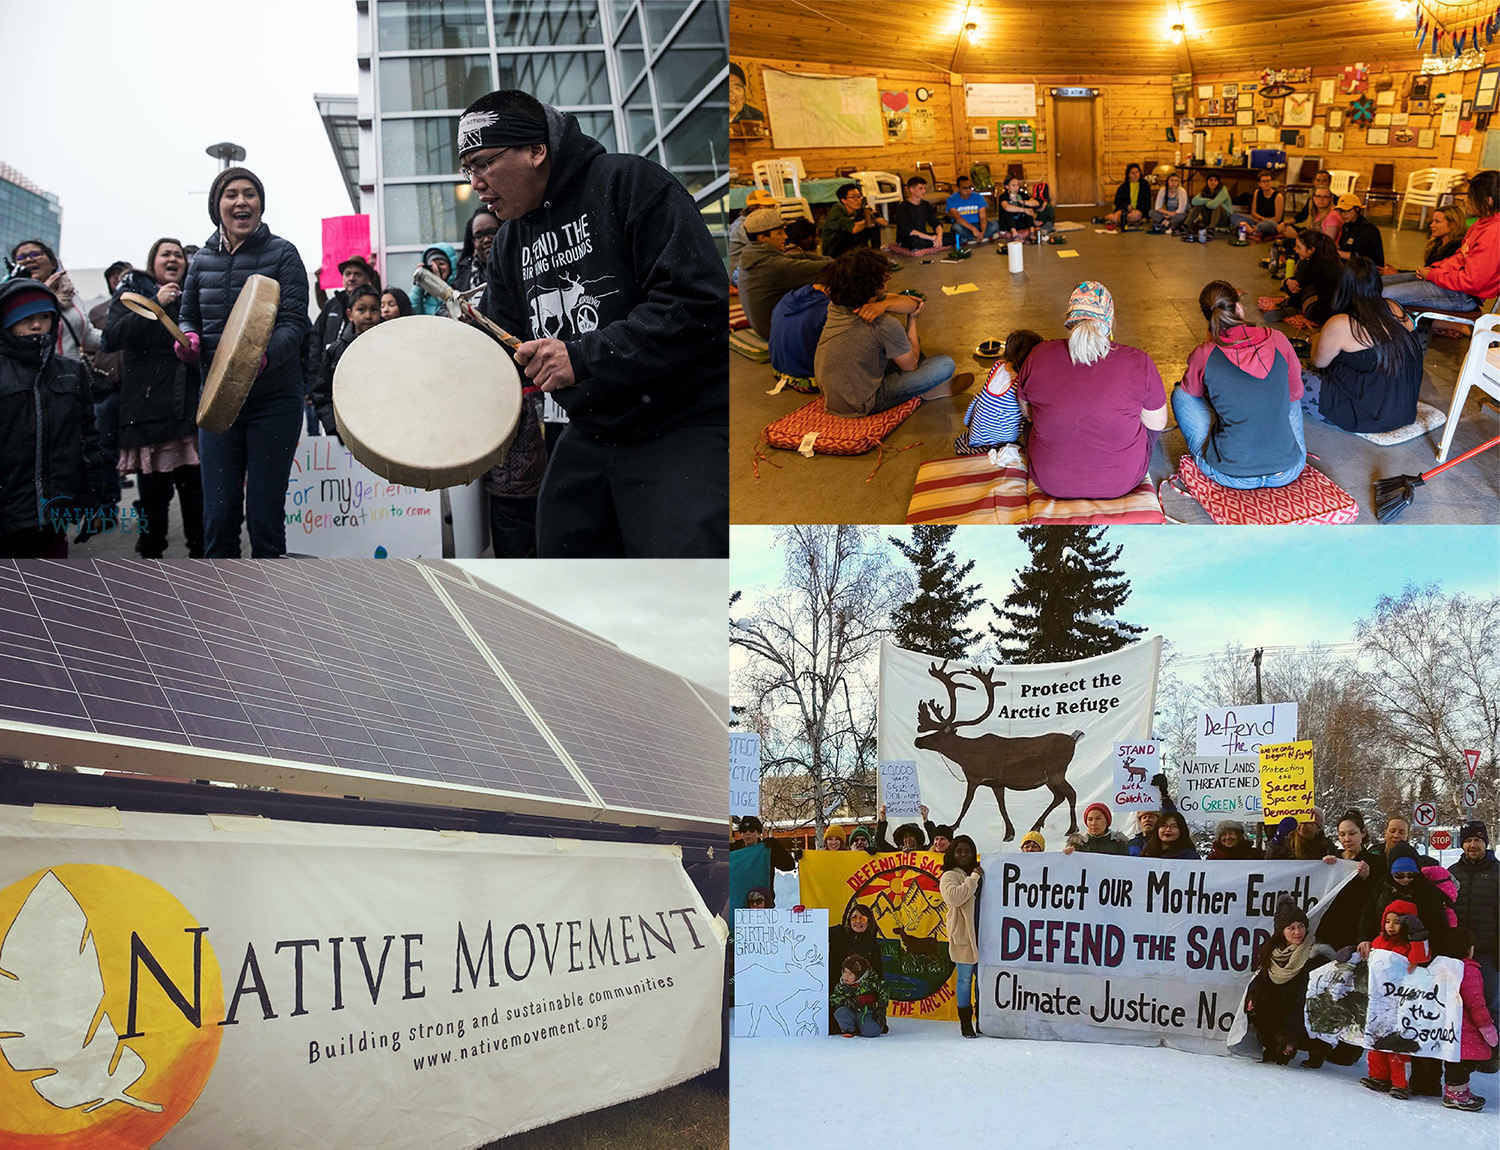 Thank you for supporting Native Movement image